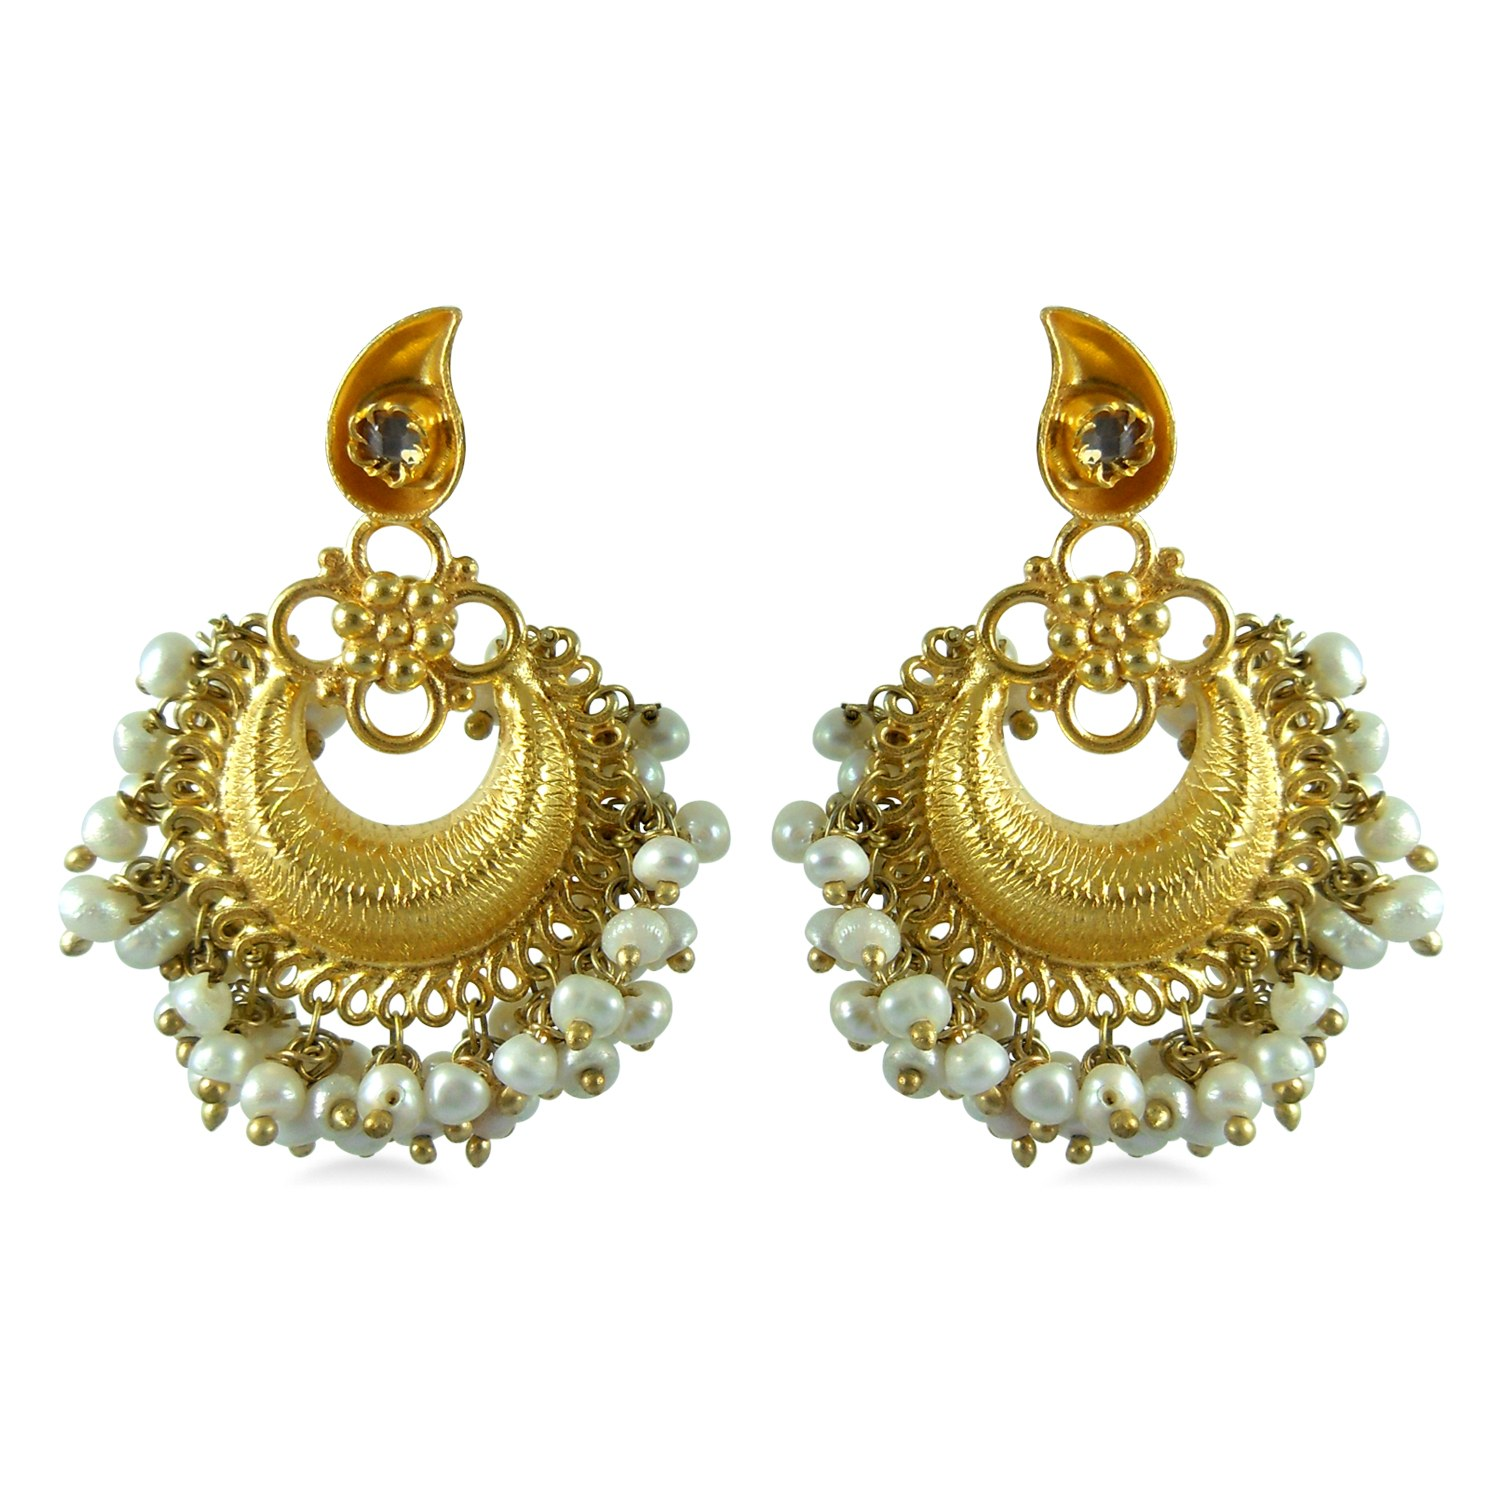 Innovative Ladies New Brands Wedding Bridal Gold Ladies Earrings Designs 201315